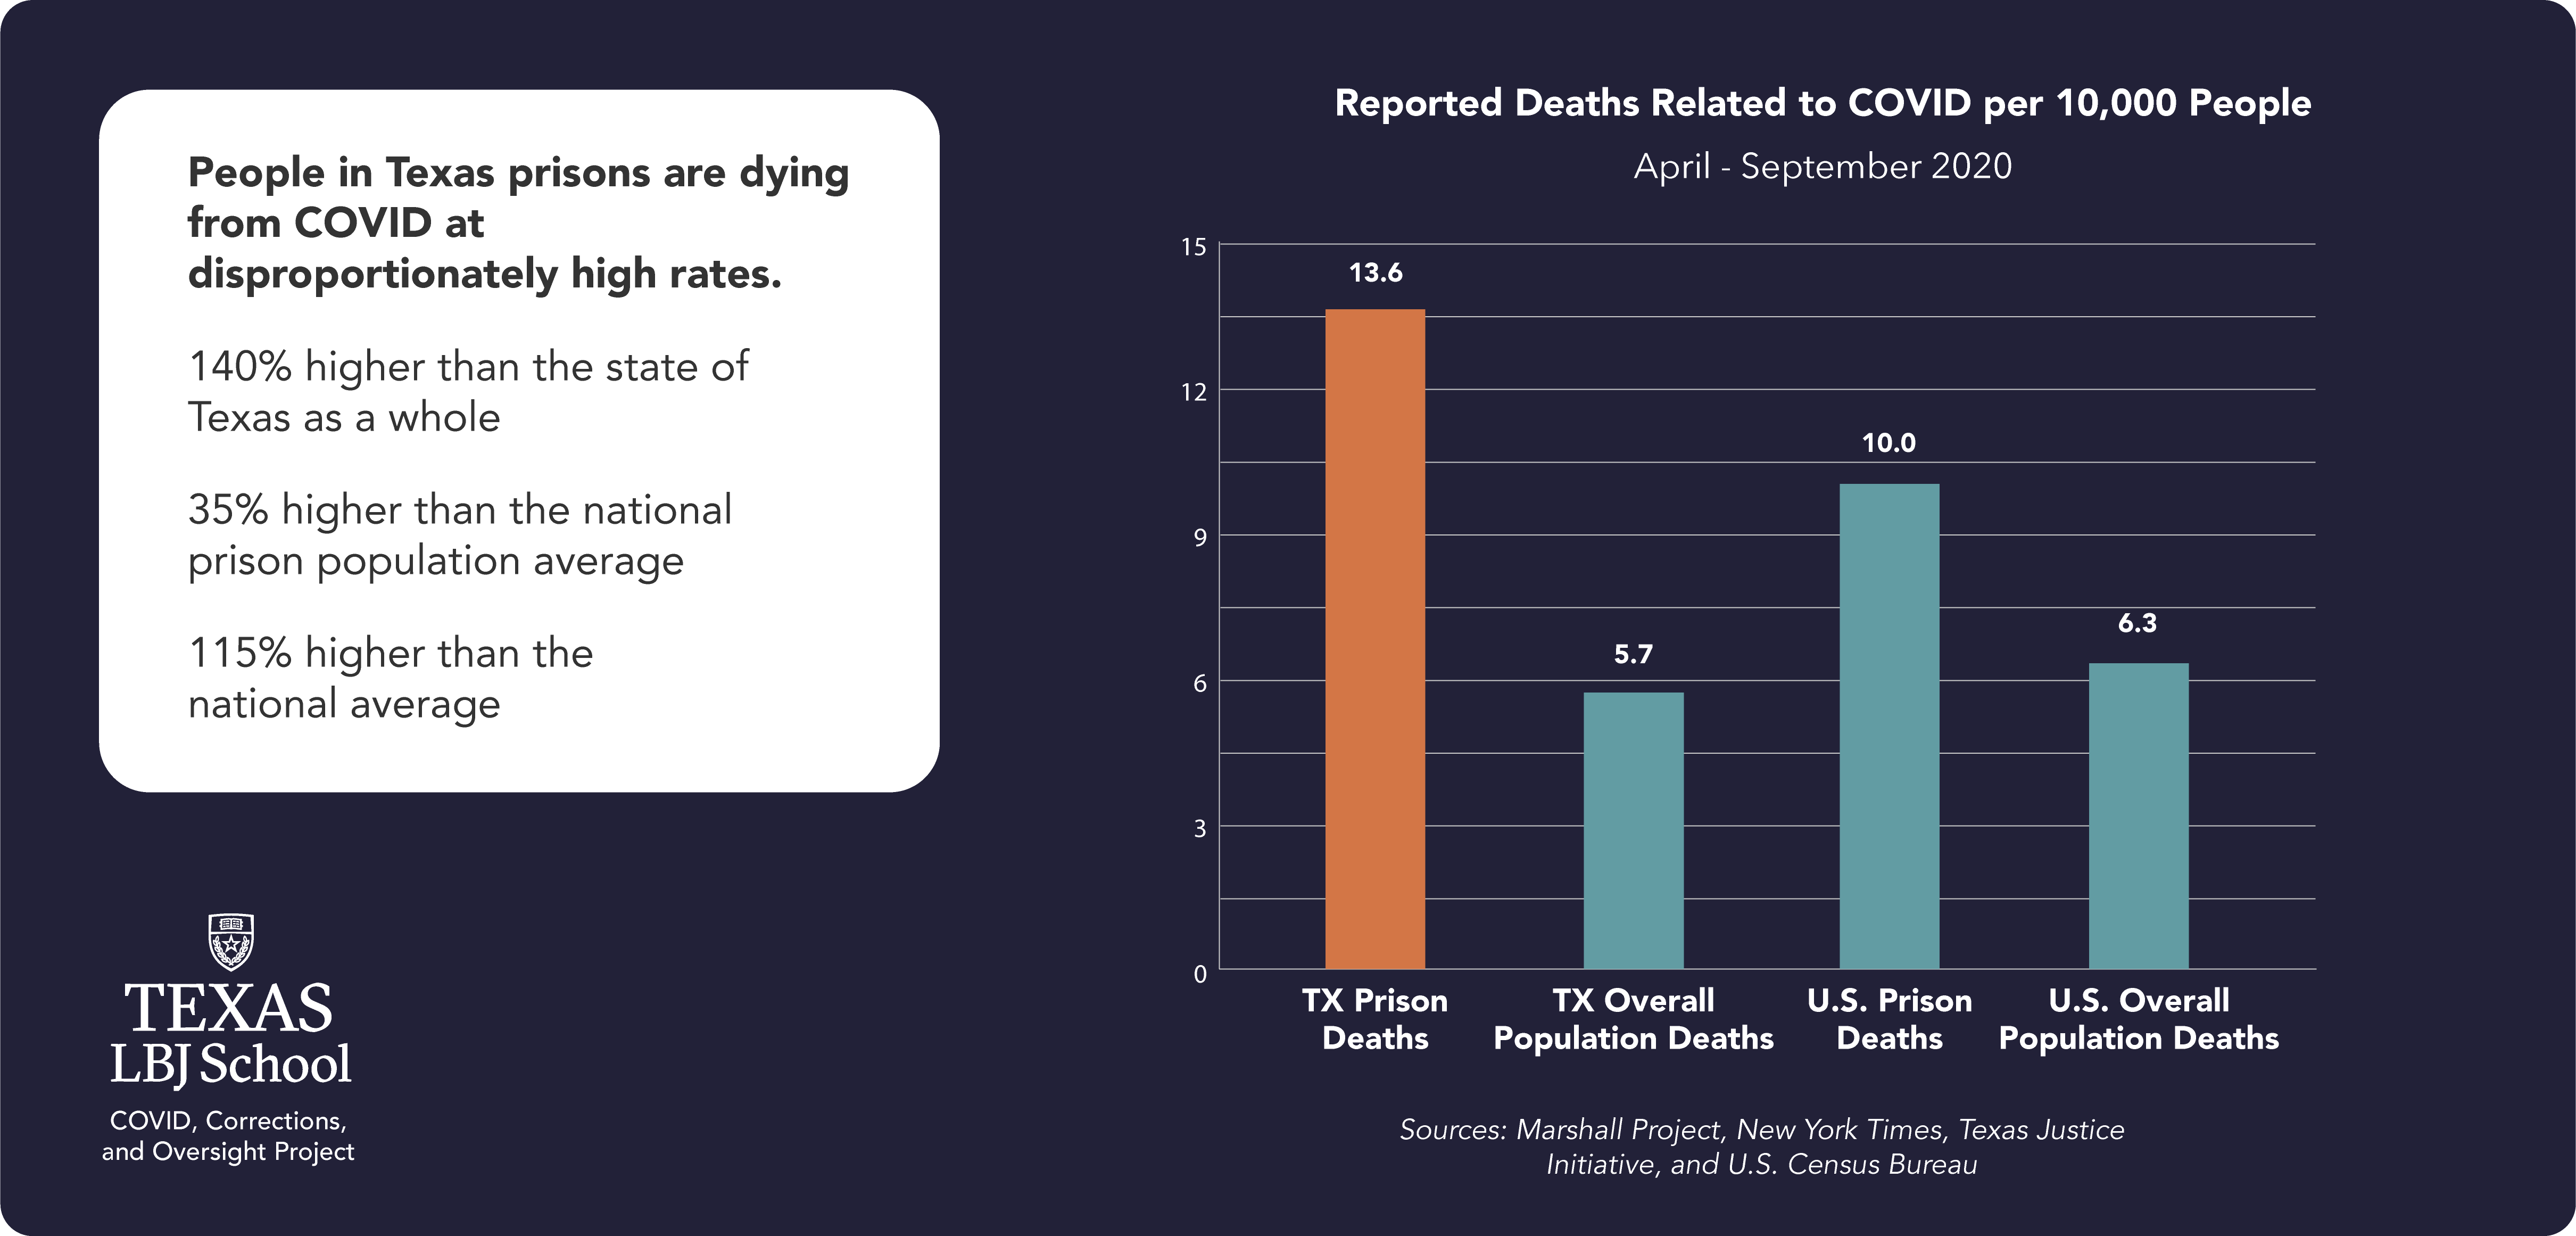 Deitch report: Reported deaths related to COVID per 10,000 people